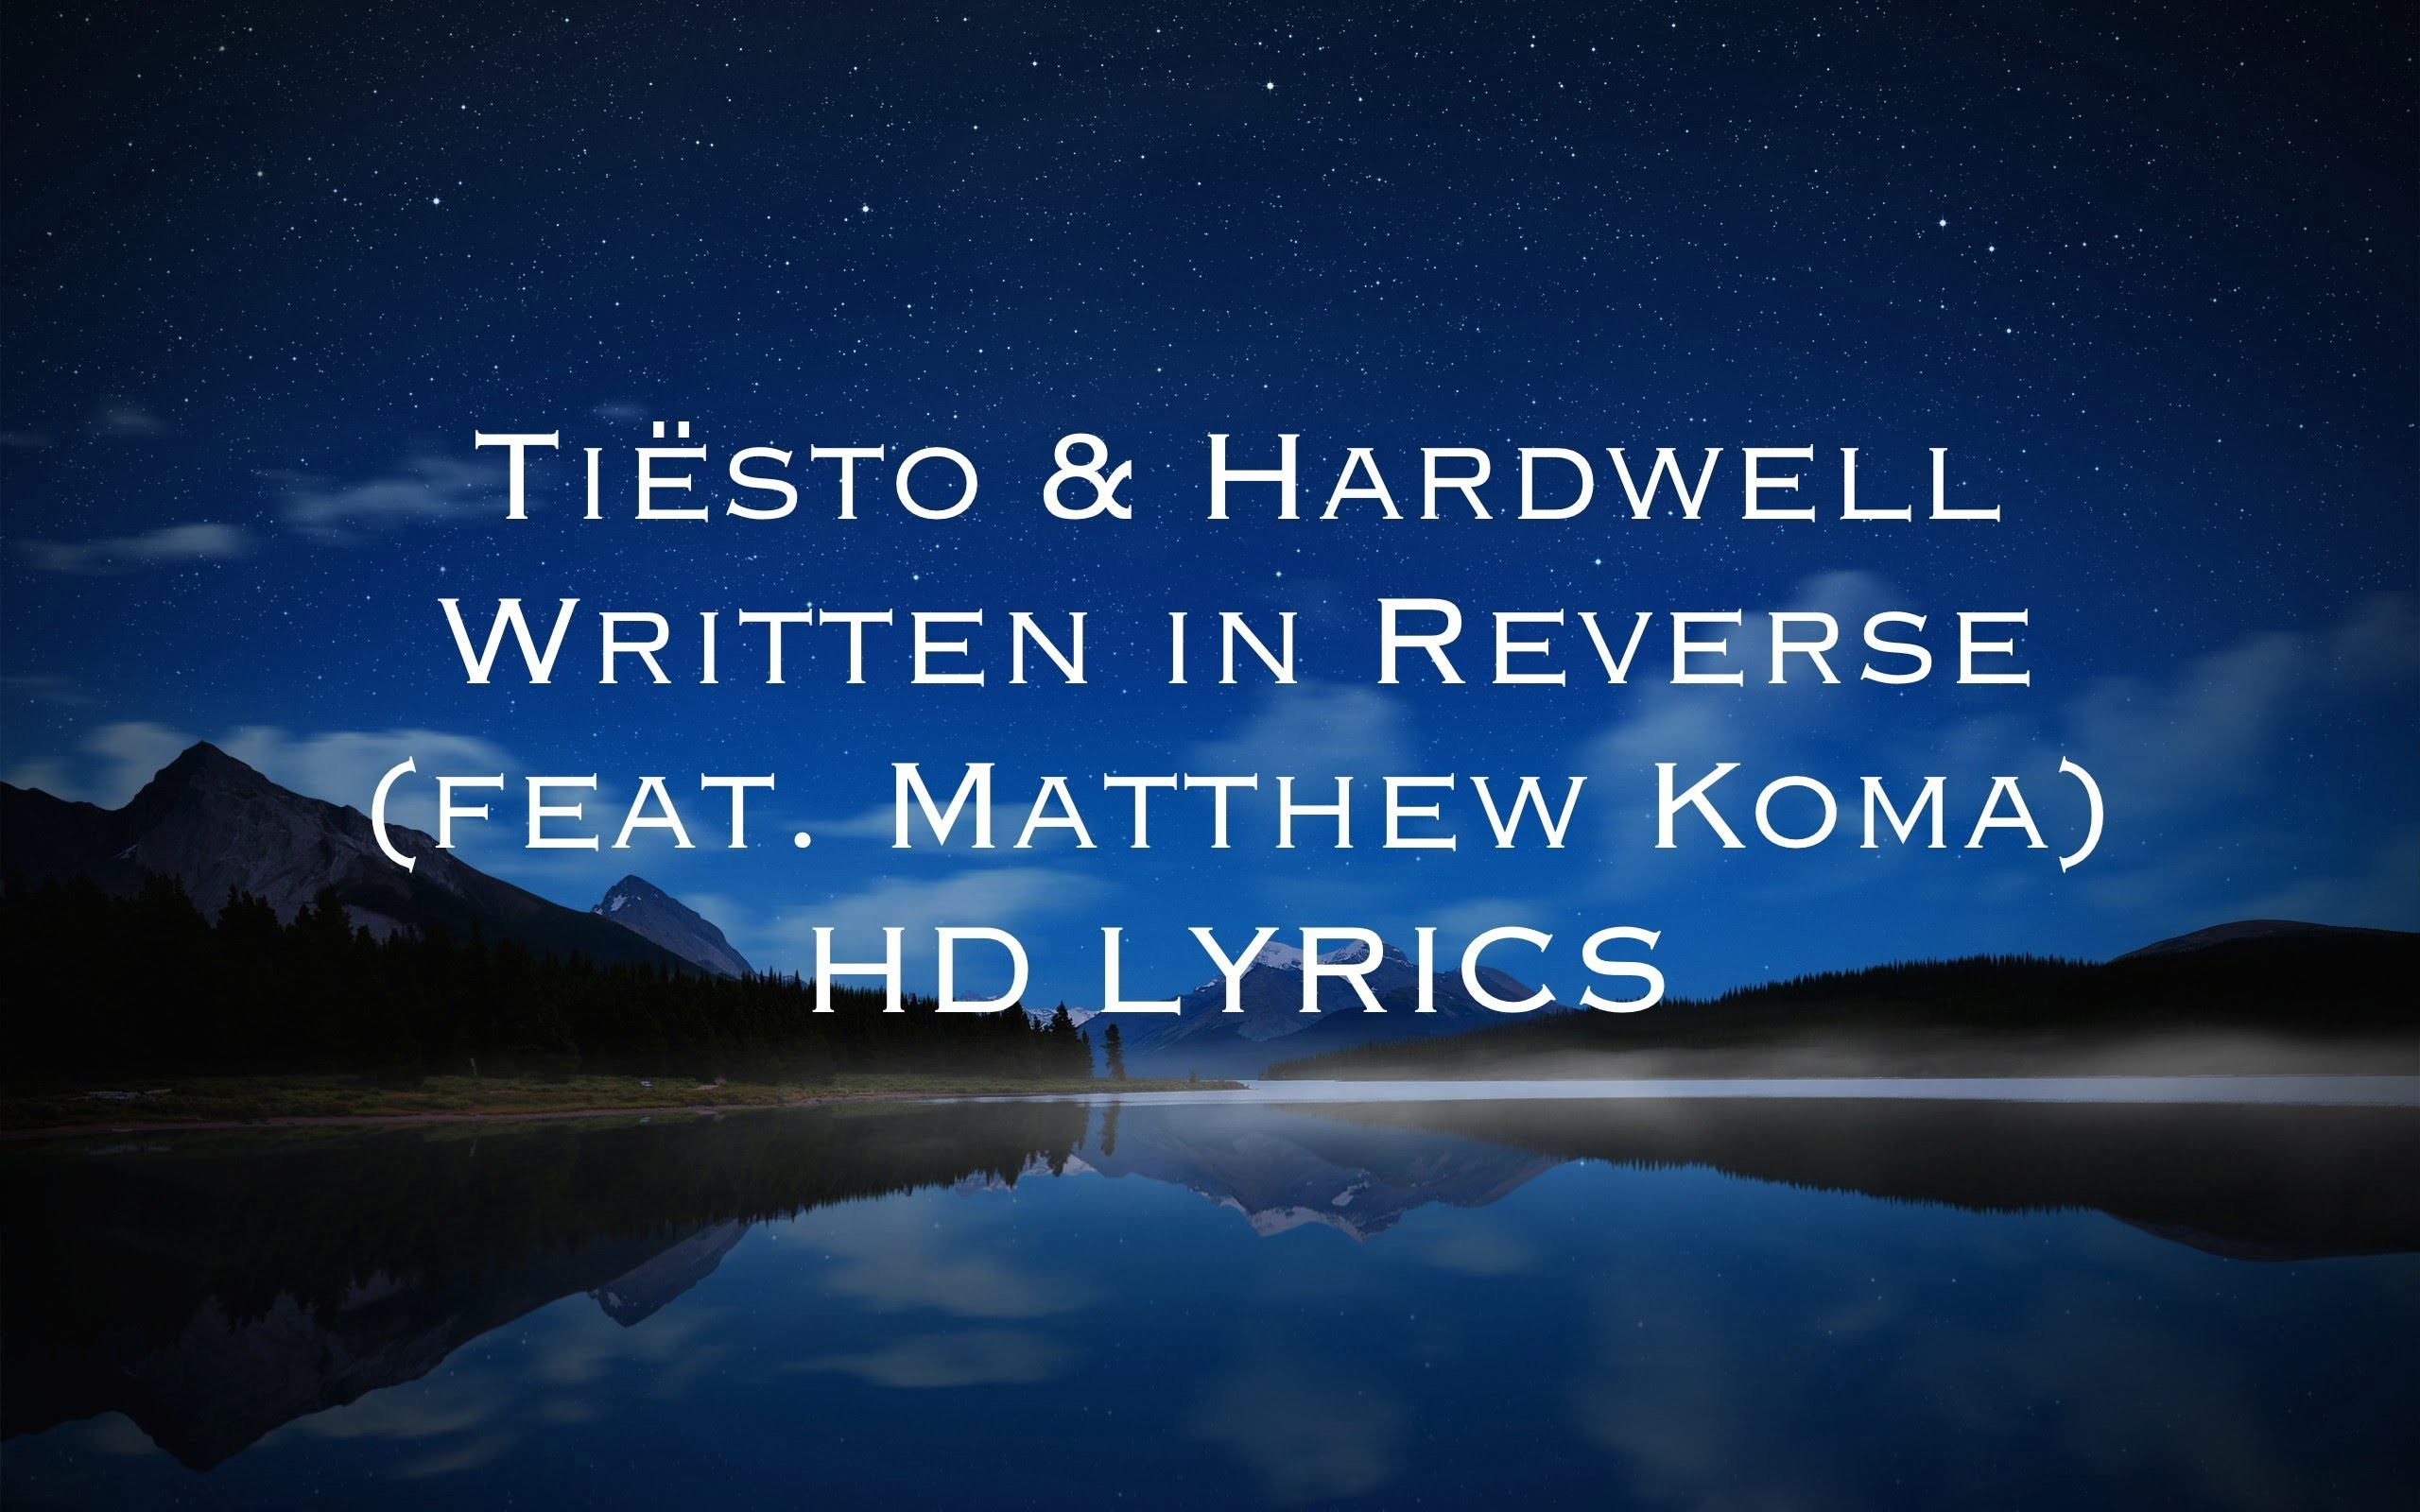 TiÃ«sto & Hardwell – Written in Reverse (feat. Matthew Koma) HD [LYRICS] –  YouTube